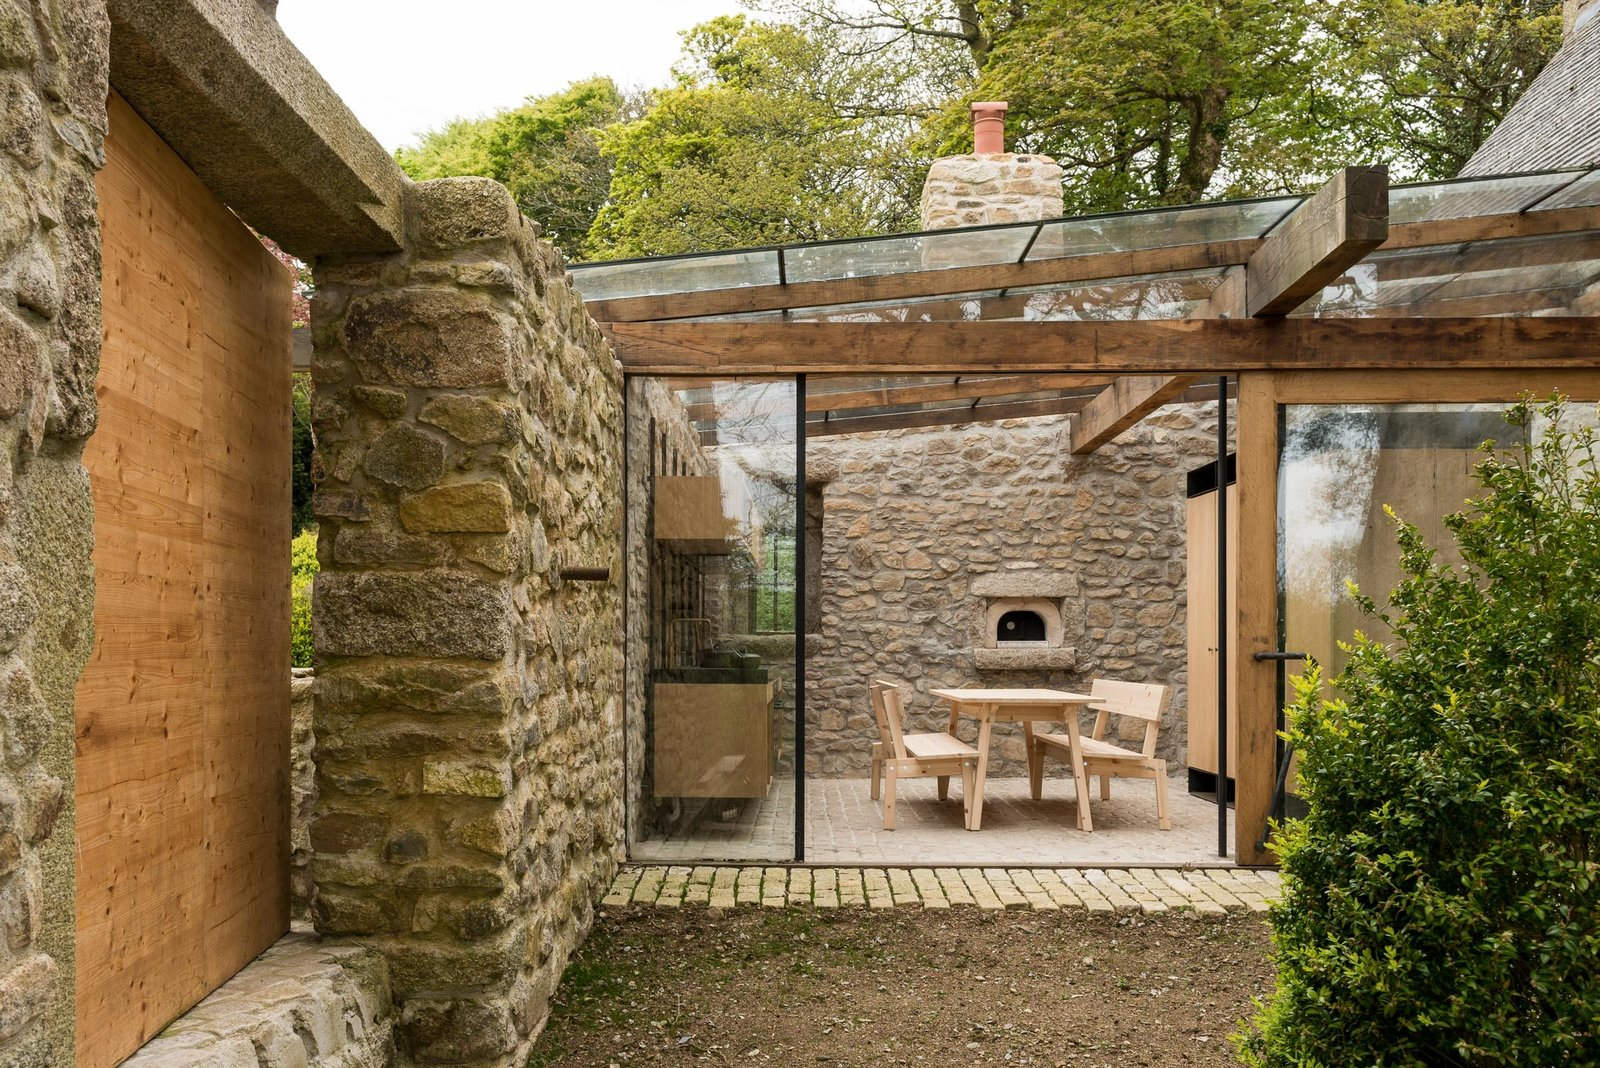 Outdoor and Gardens The kitchen, the property's only modern addition, has been created from a garden courtyard. The space has been enclosed by a glazed roof and wall with sliding door, yet it retains its open feel.  Best Photos from A Revamped Estate in the English Countryside Asks $2.3M